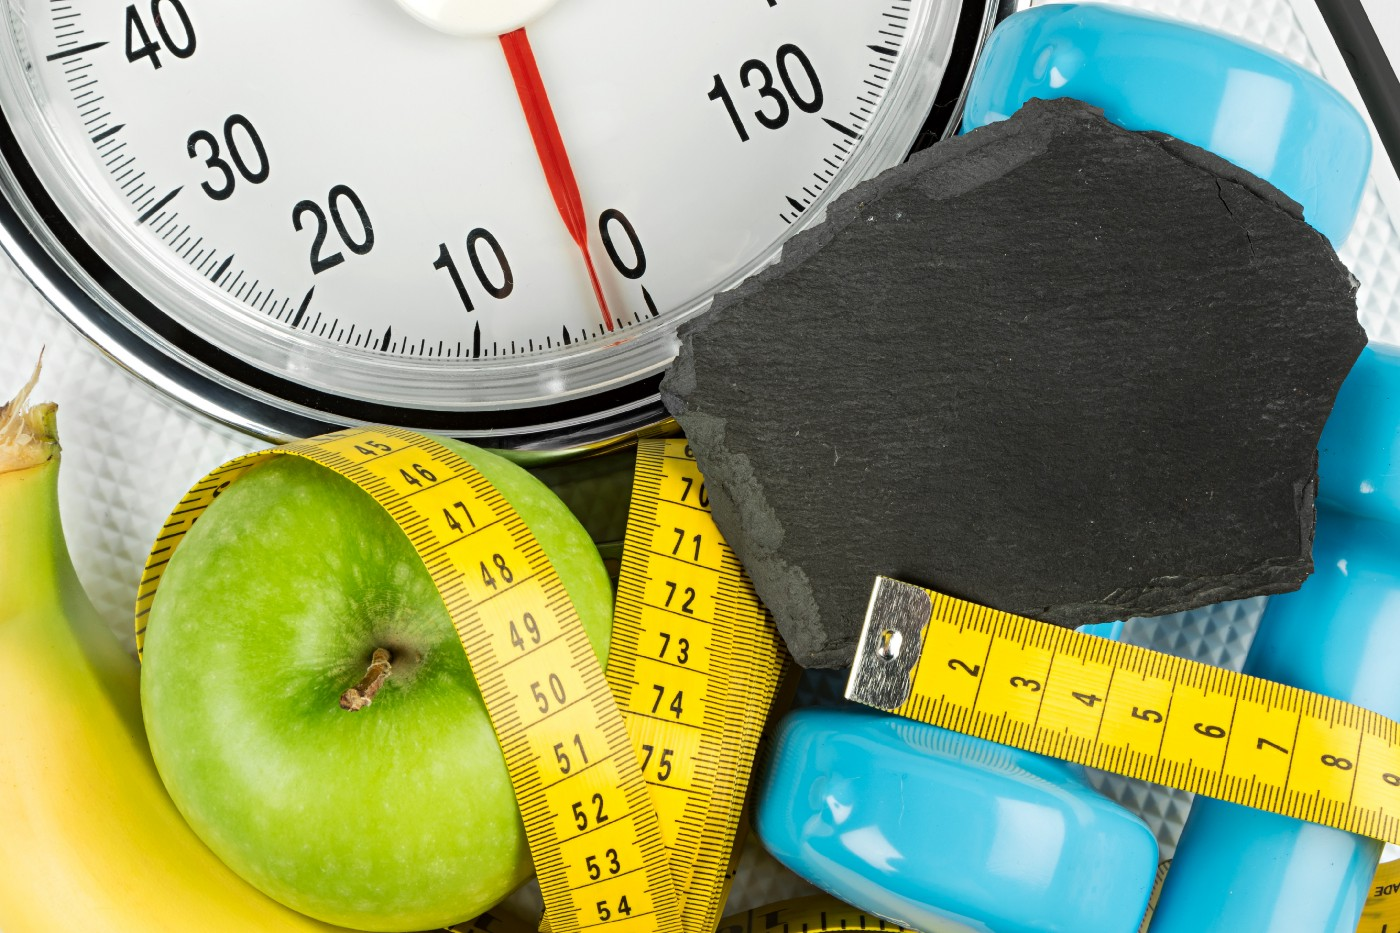 Weights, a tape measure, fruit, and a scale — all things commonly associated with New Year's resolutions